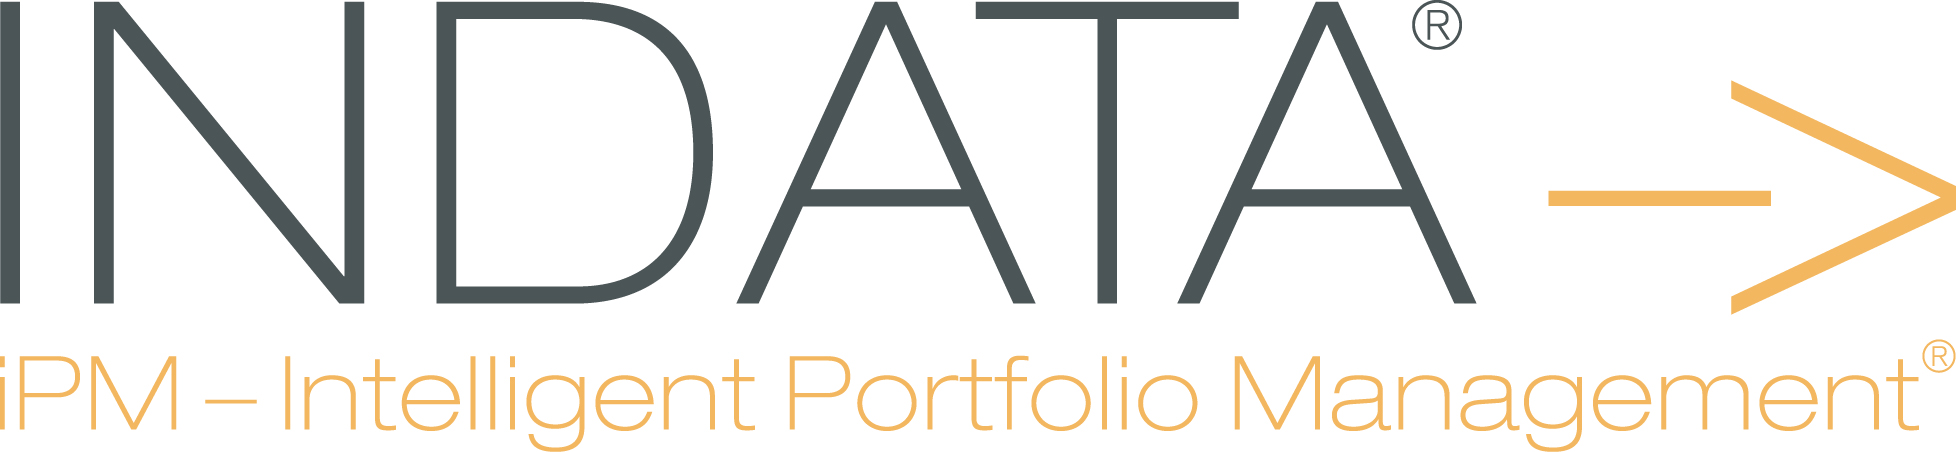 INDATA Announces Launch of Compliance-as-a-Service Offering